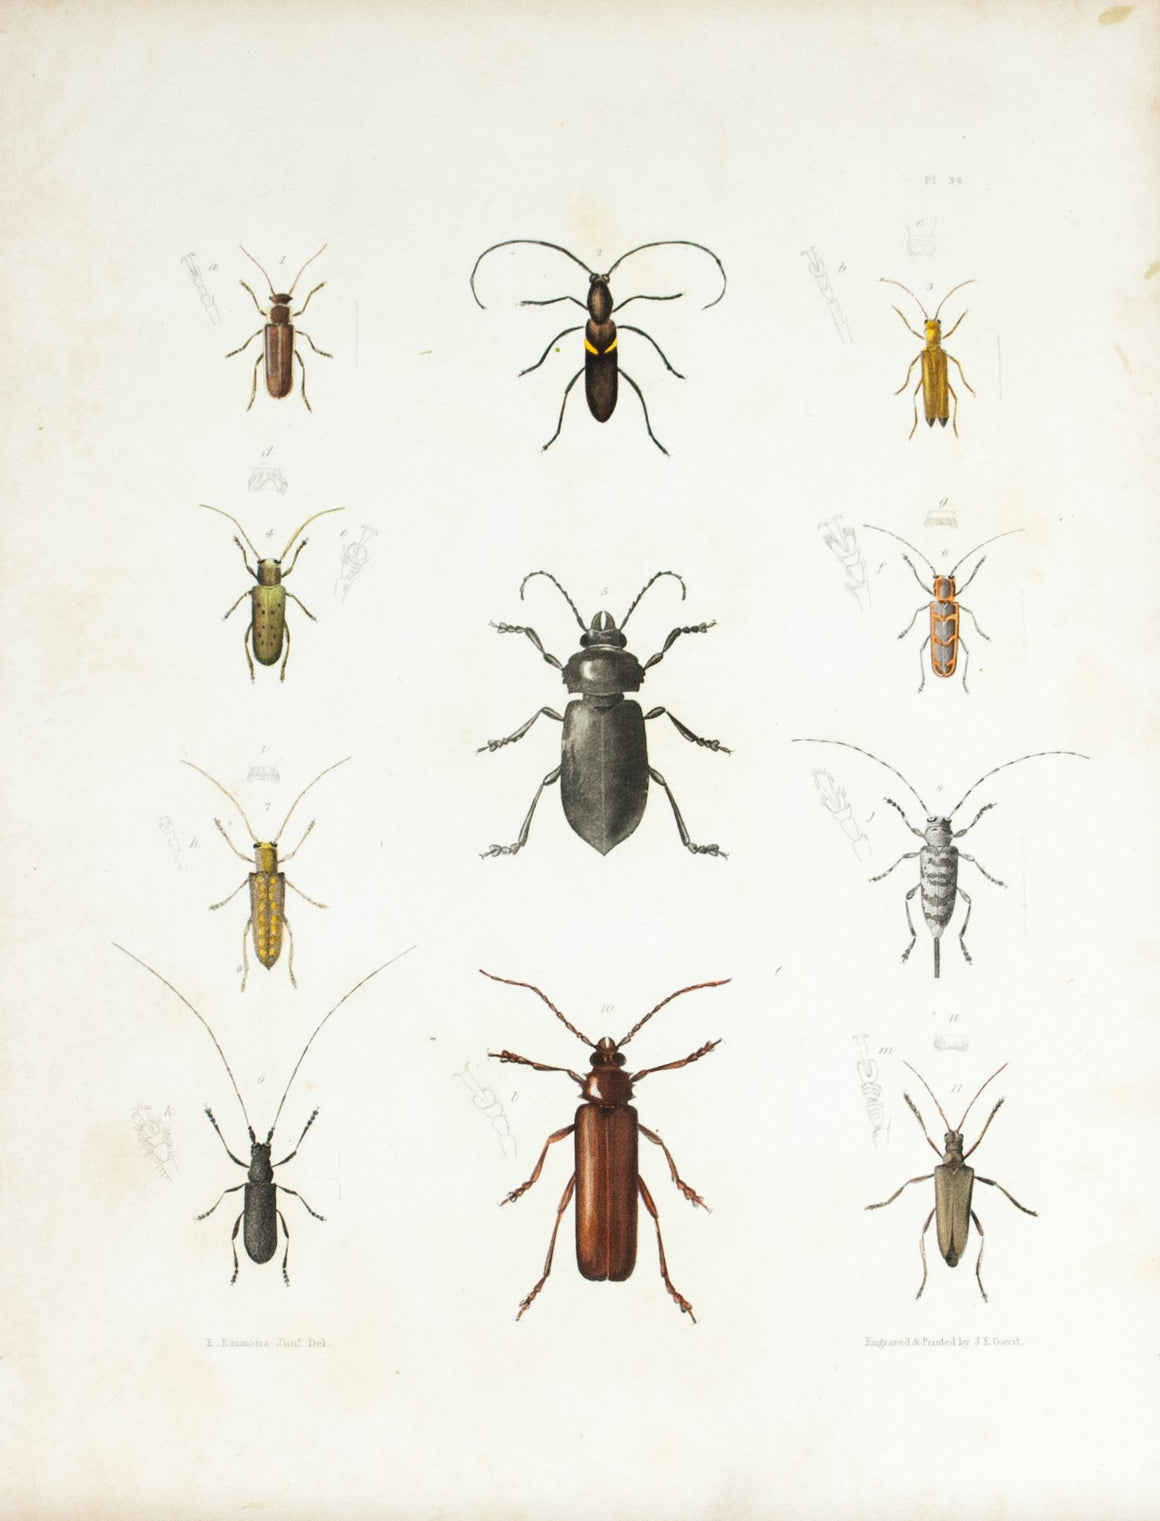 1854 Plate 34 - Long Horned Beetle - Emmons